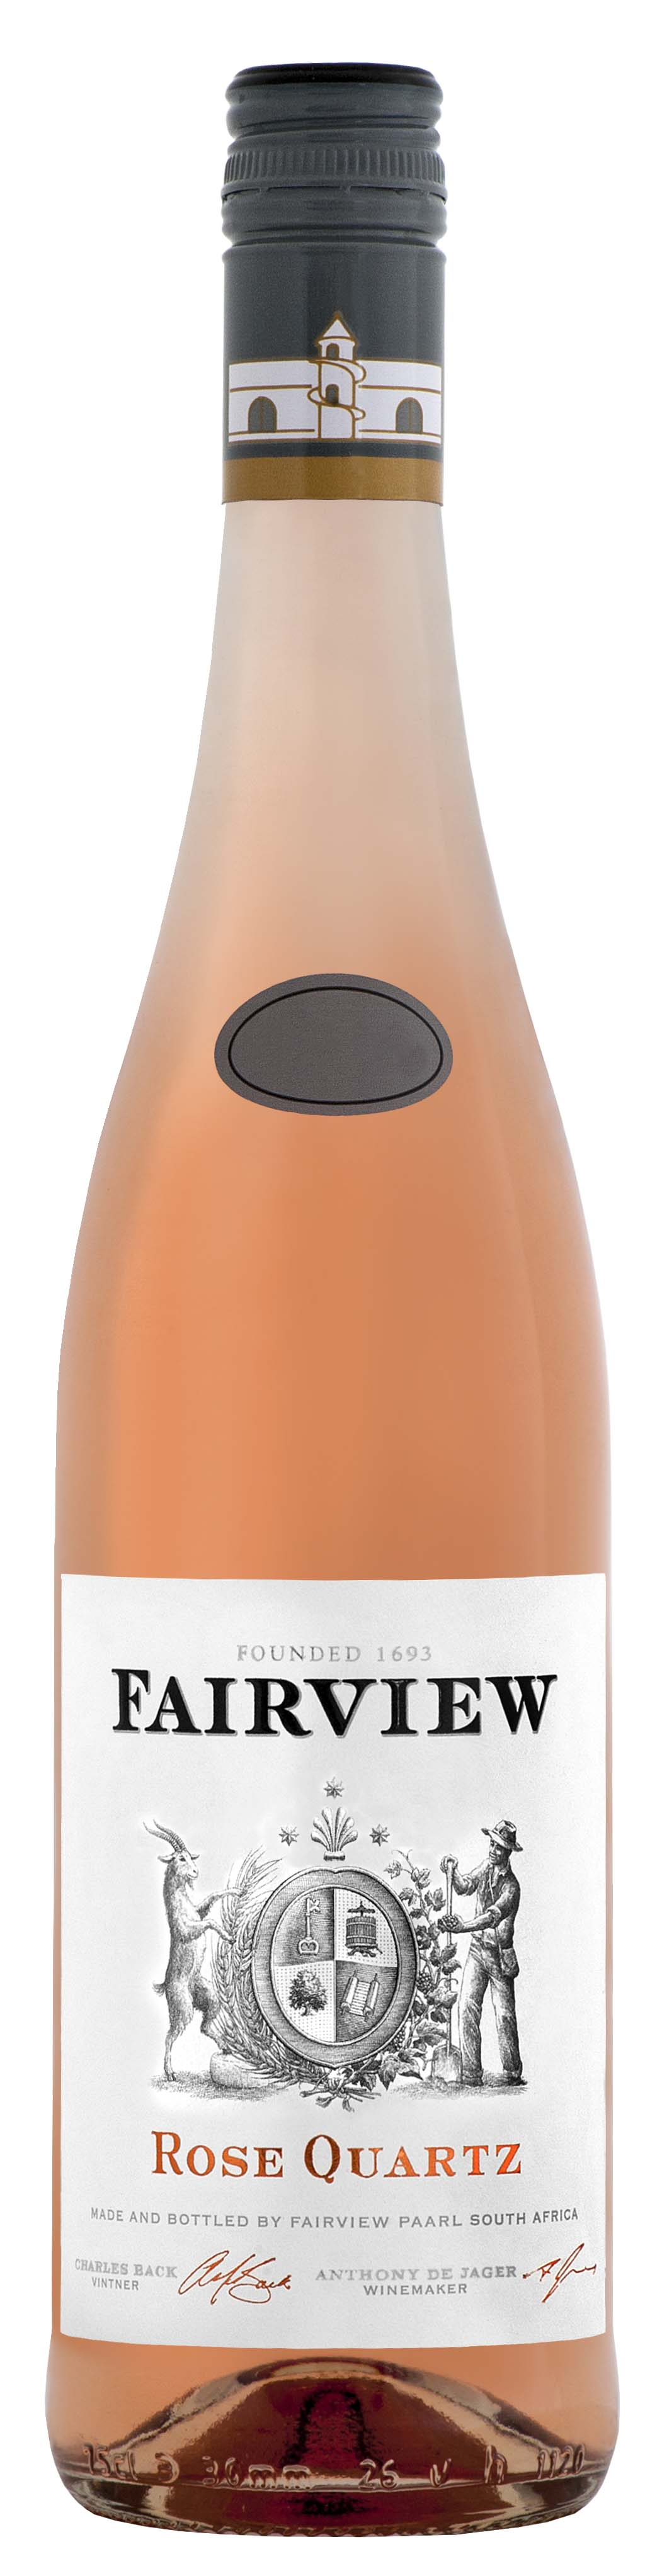 Fairview, 'Rose Quartz' Paarl  2016